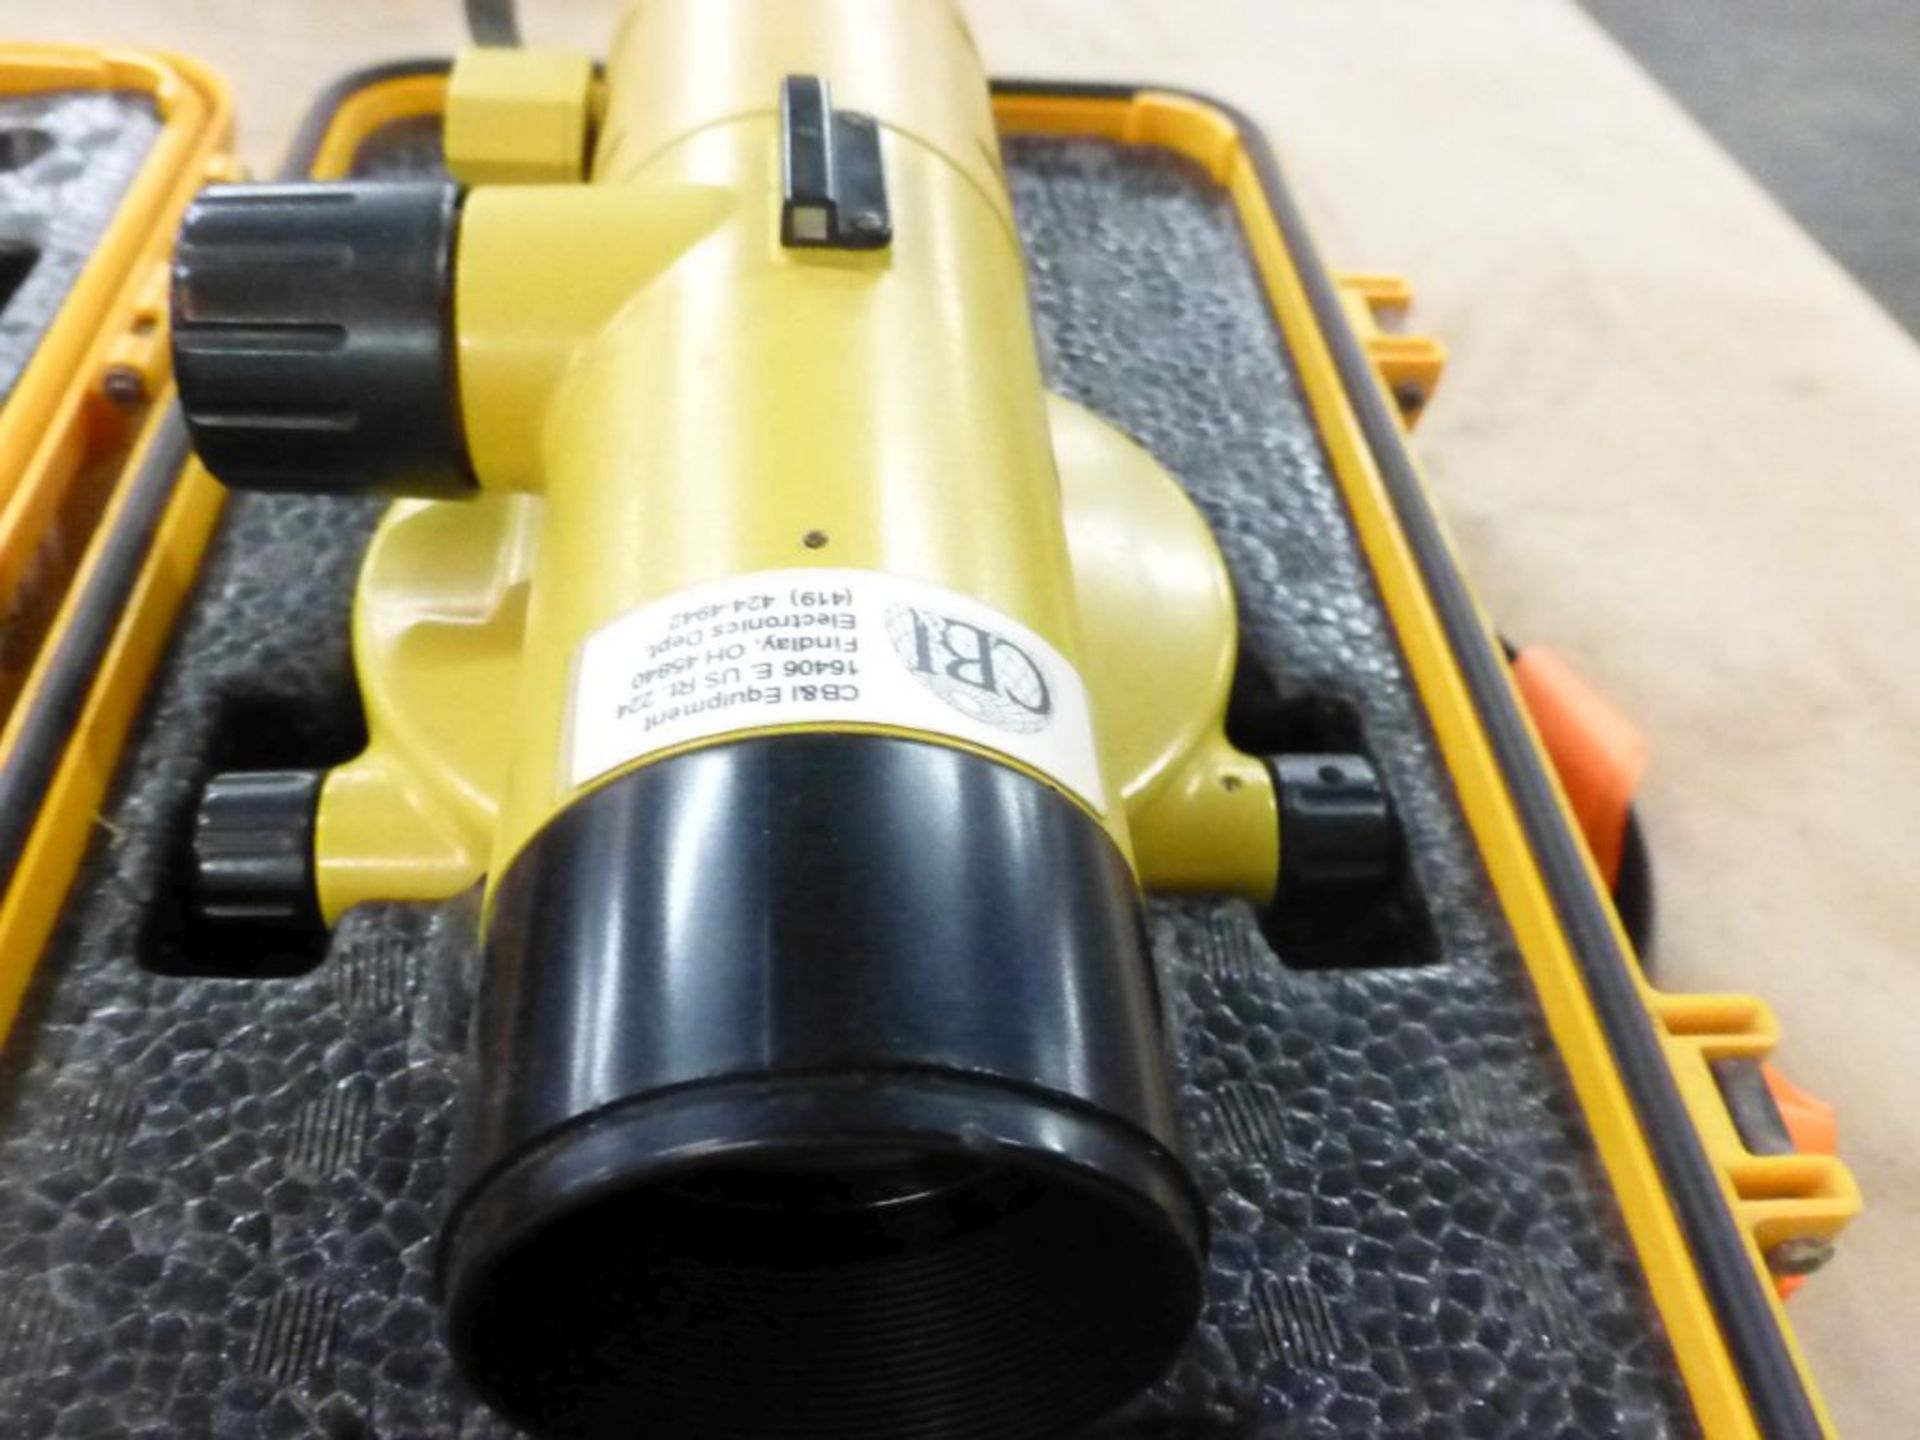 Topcon AT-G2A Auto Level | Case - Image 6 of 10